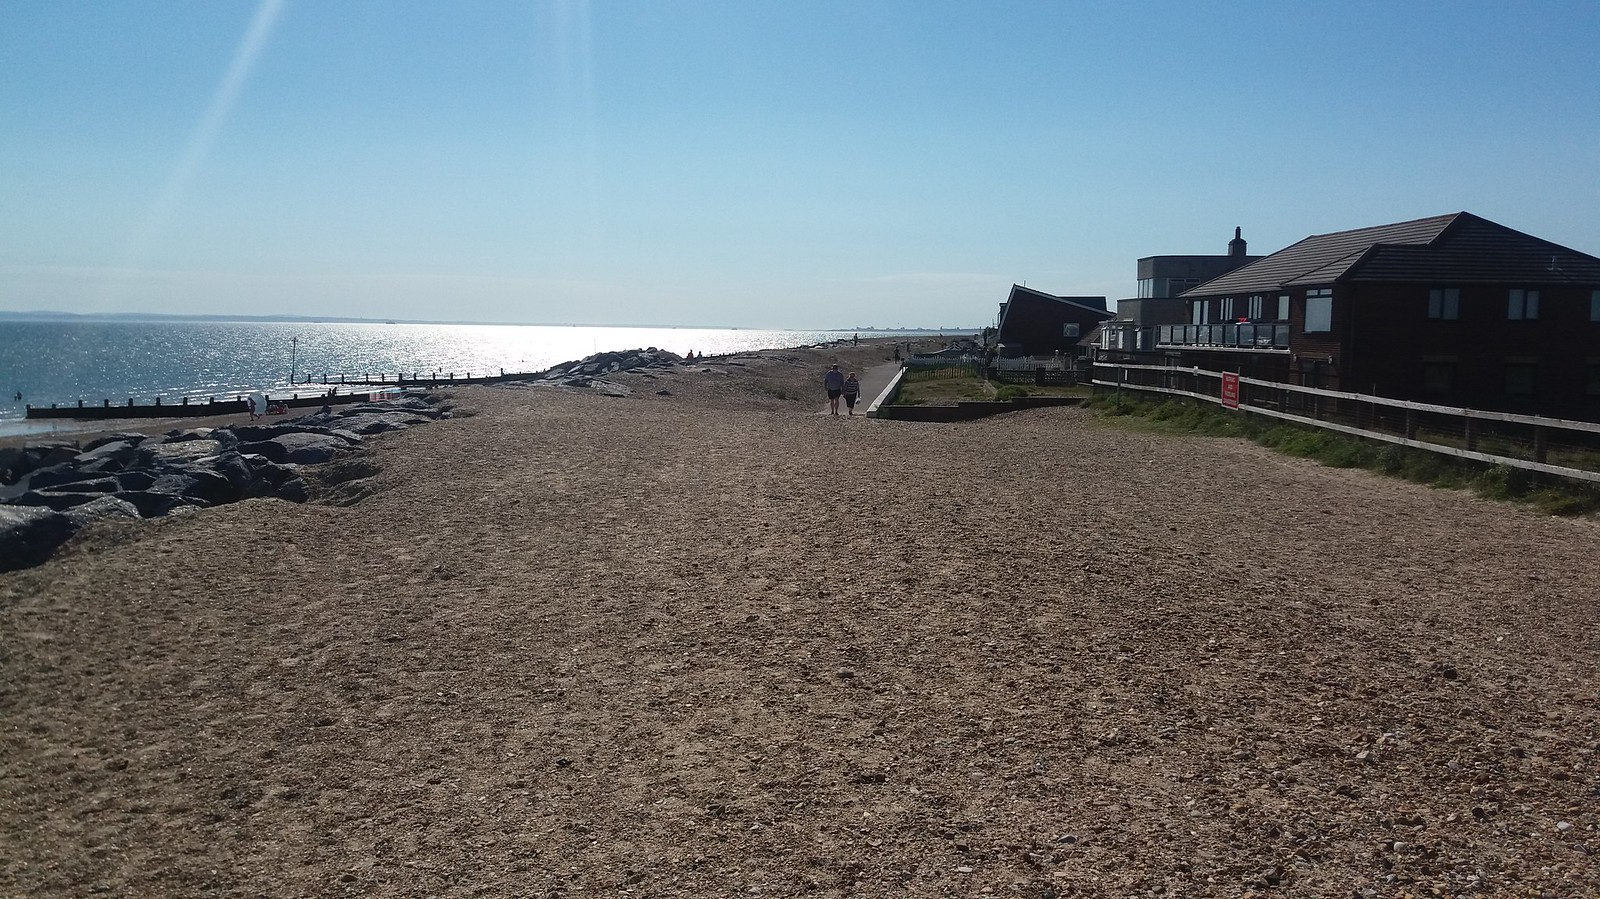 20160719_165728 Eastoke Point, looking back towards the main promenade